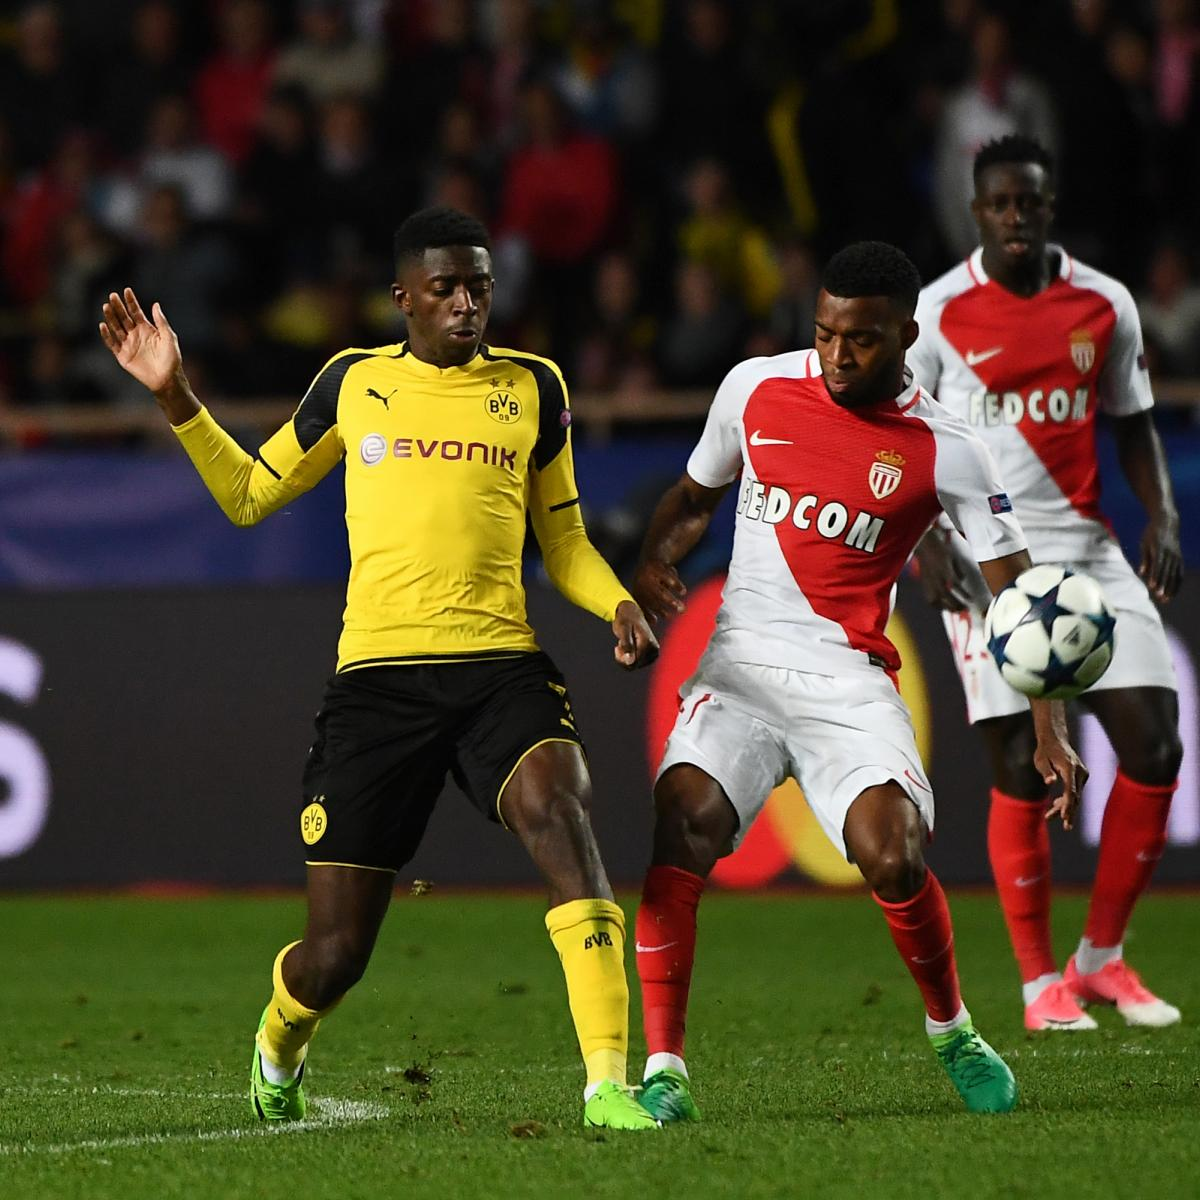 Barcelona Transfer News: Latest Rumours on Ousmane Dembele and